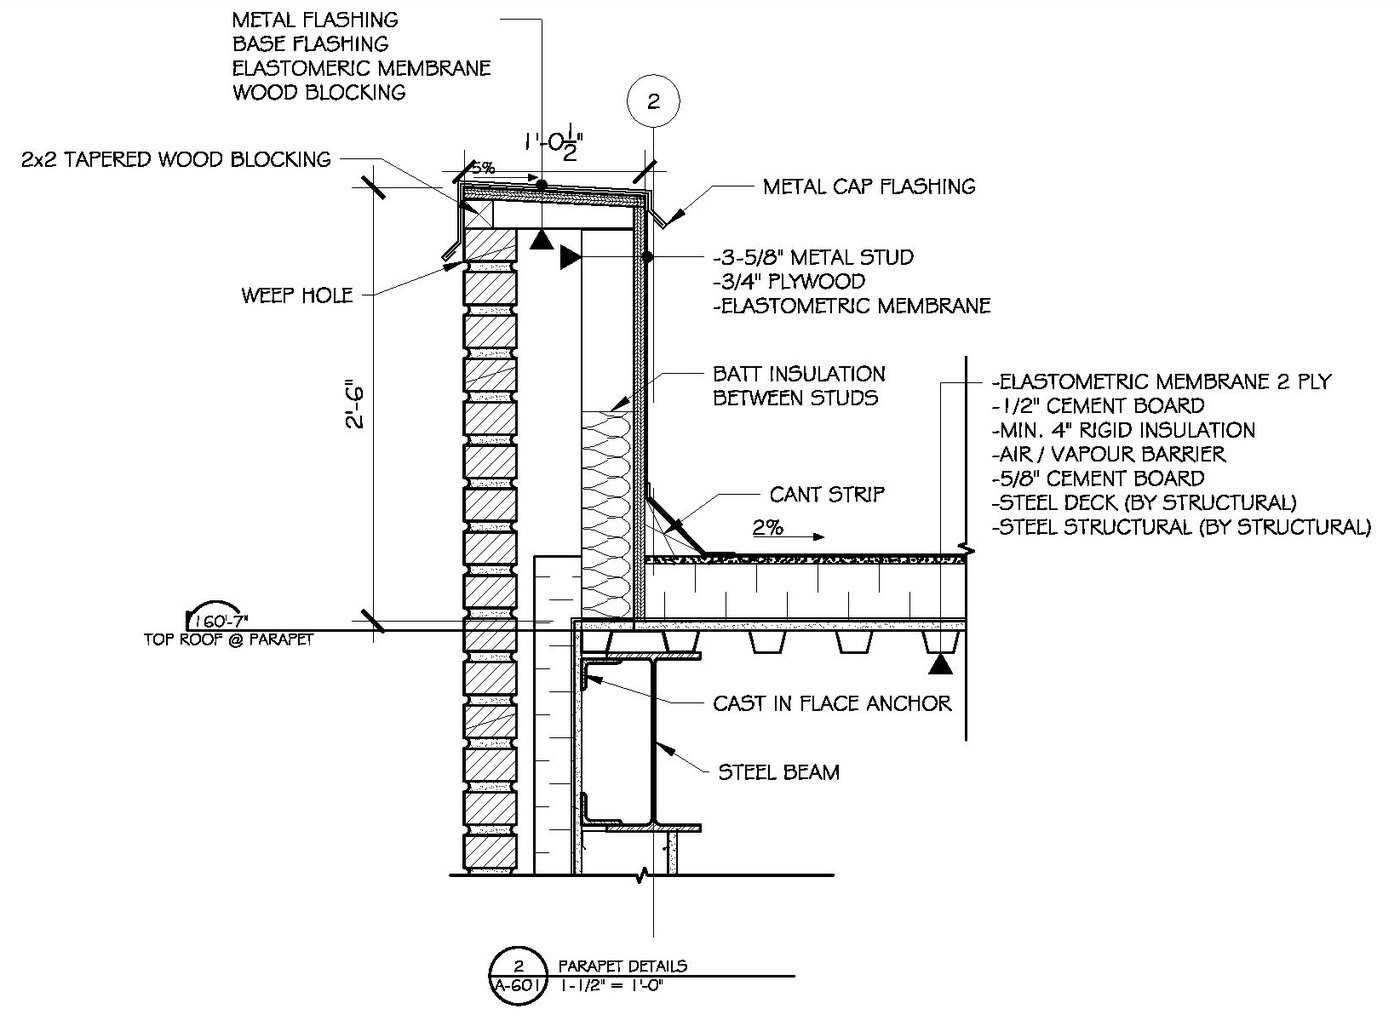 wall sections  u0026 detail drawings by raymond alberga at